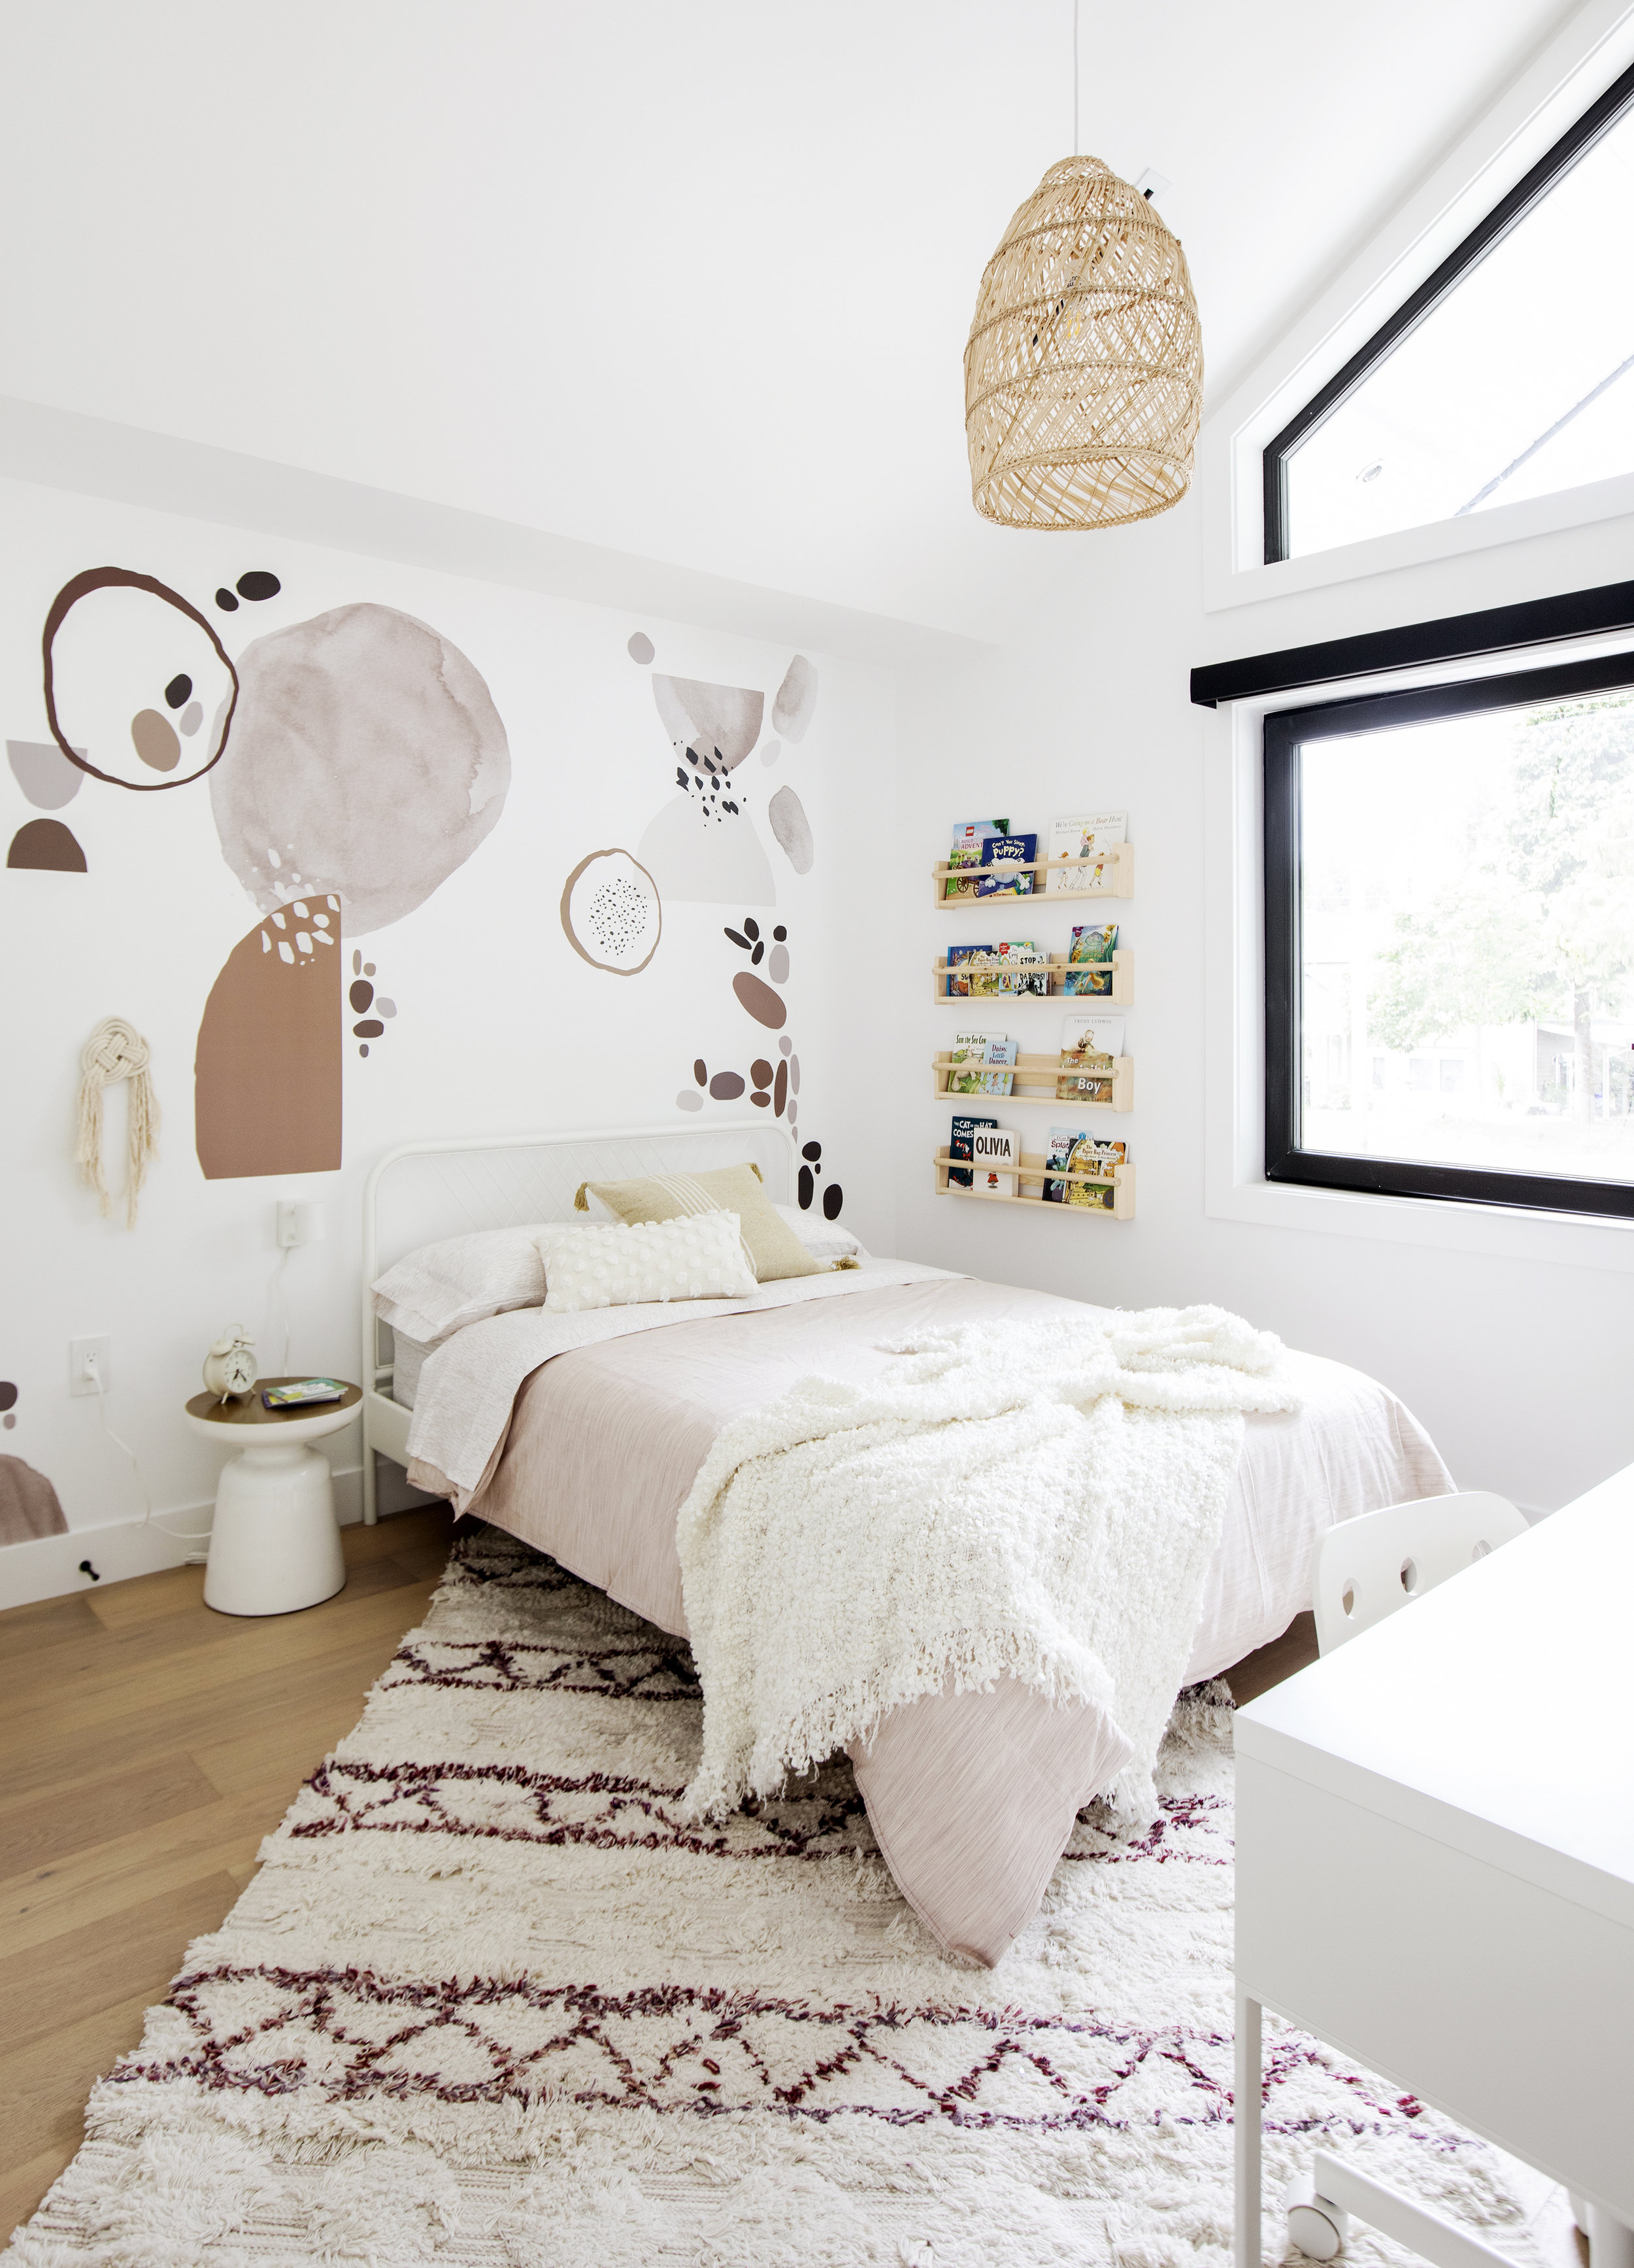 A child's bedroom in East 13th Street, complete with a comfortable pink twin bed and custom book rack built into the wall next to it.